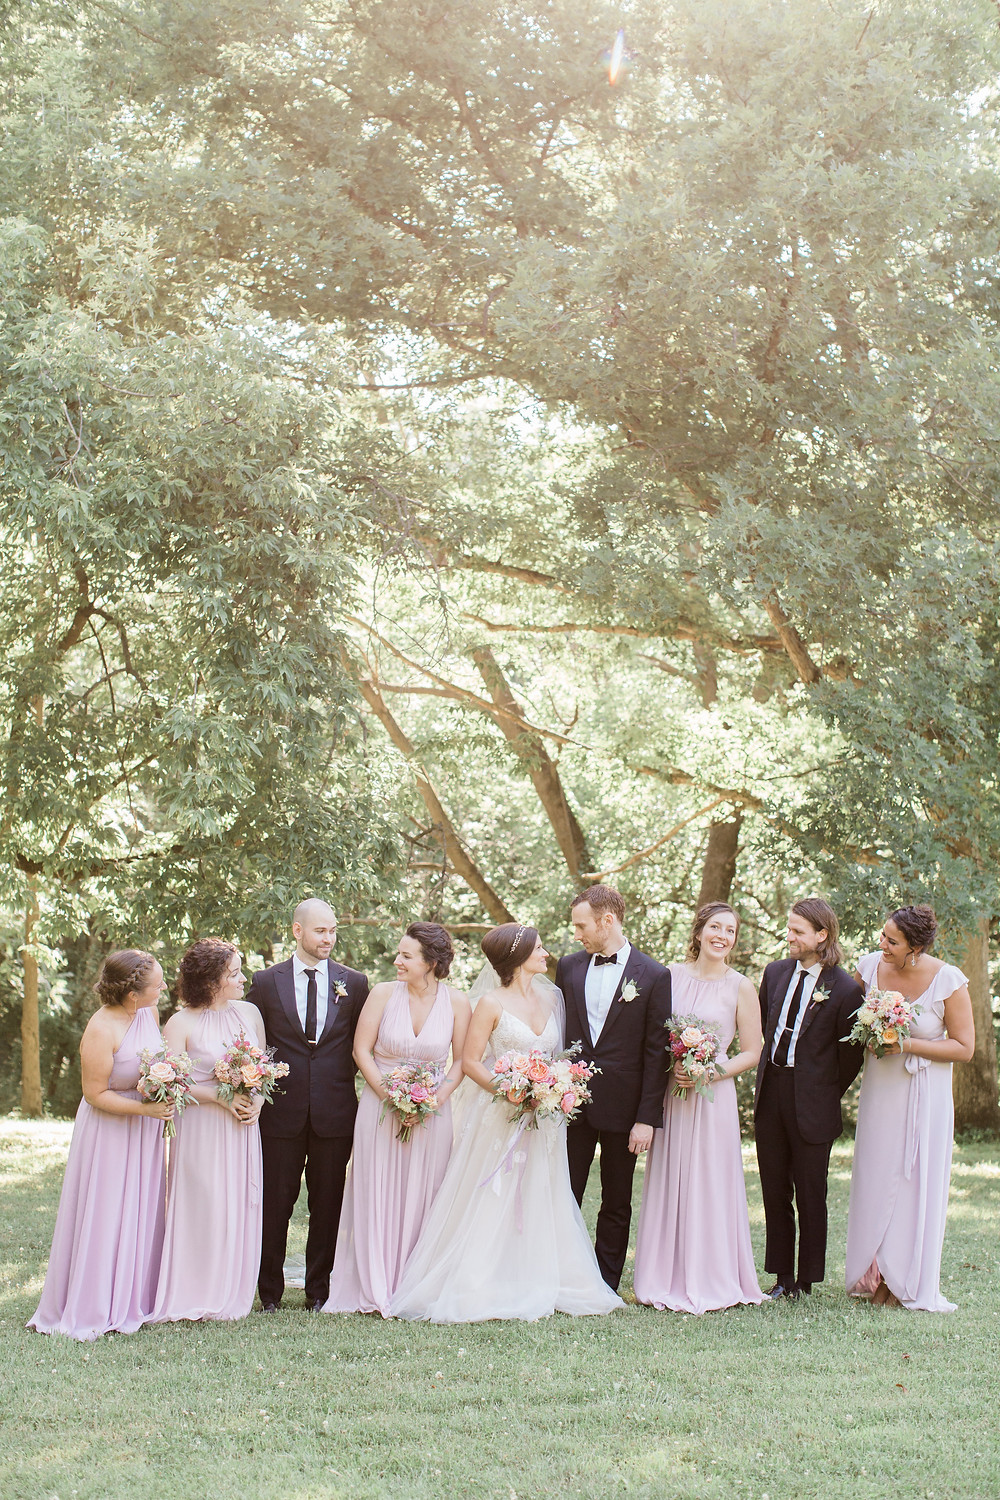 Bridal party in lavender dresses and black suits with pastel summer garden wedding bouquets by studio bloom iowa